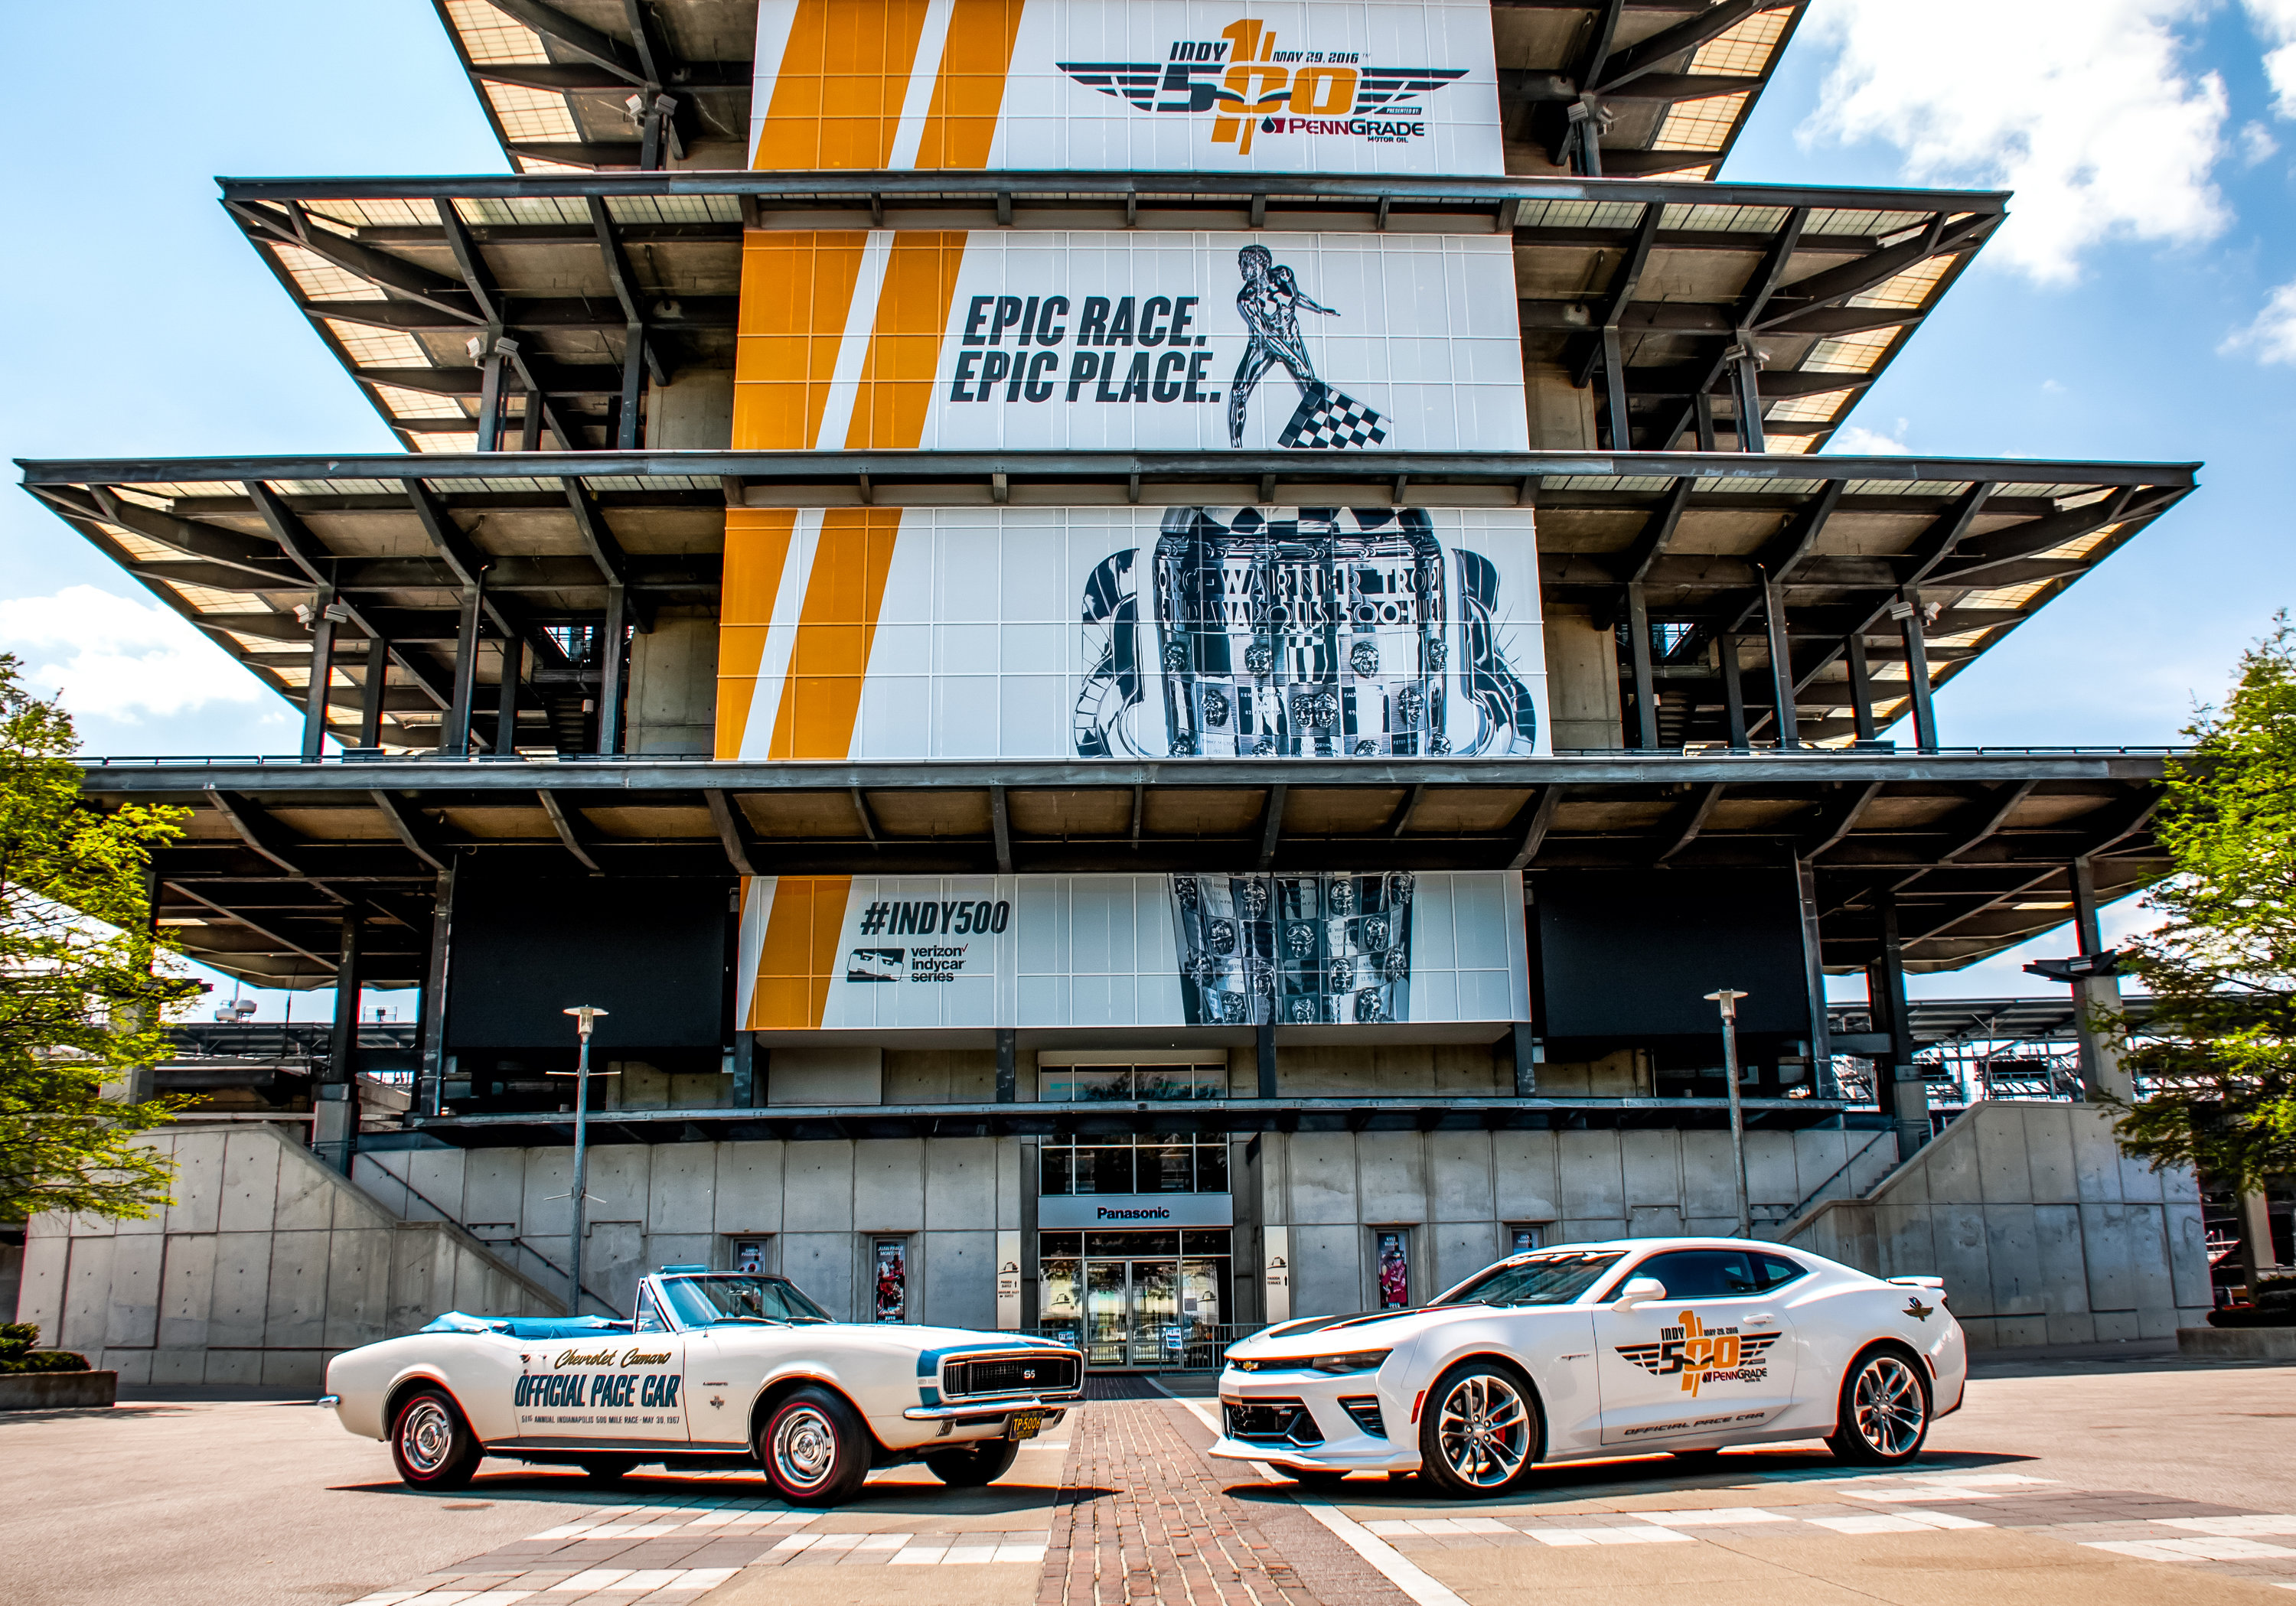 The 2017 Chevrolet Camaro SS 50th Anniversary Edition (right) will lead the field during the 100th running of the Indianapolis 500 on Sunday, May 29, driven by motorsports legend Roger Penske. ItÕs the 27th time since 1948 that a Chevrolet has served as the pace car and the ninth time for Camaro. Nine pace cars trace the history of Camaro and the Indianapolis 500. The first Camaro to pace the race was the 1967 Camaro RS/SS (left) in its inaugural year. (Photo by Indianapolis Motor Speedway for Chevy Racing)